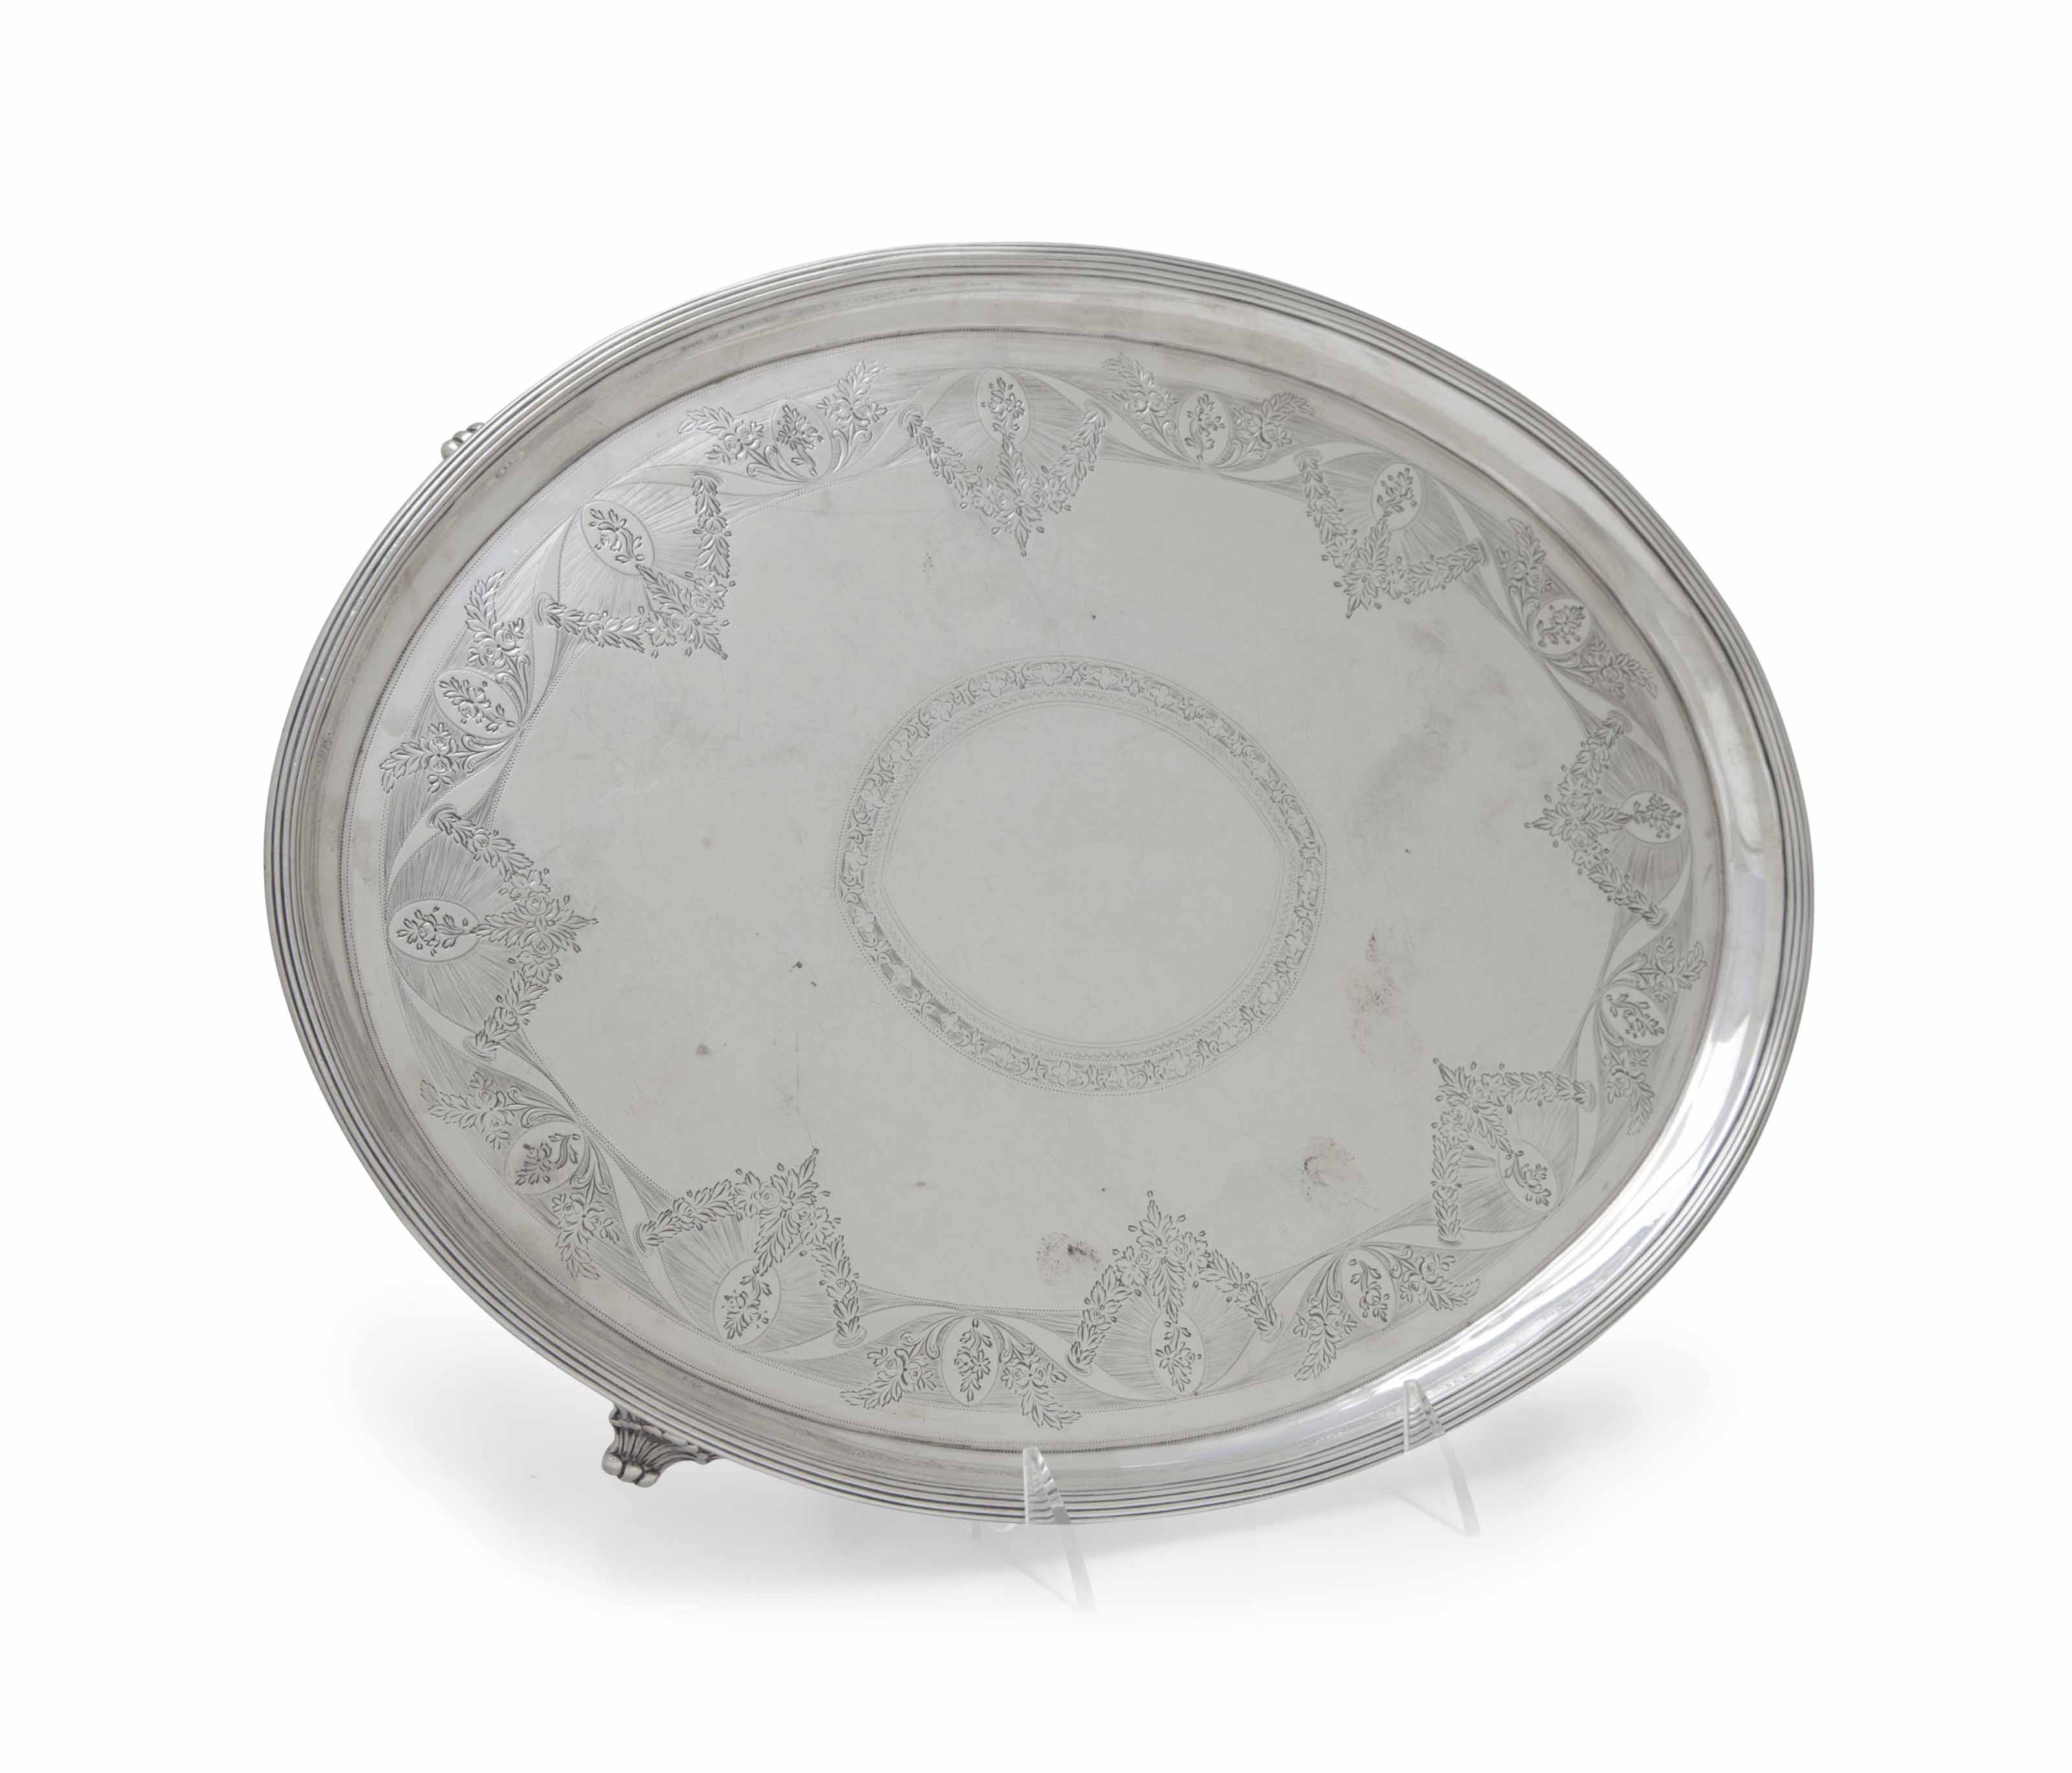 A GEORGE III SILVER OVAL FOOTED SALVER